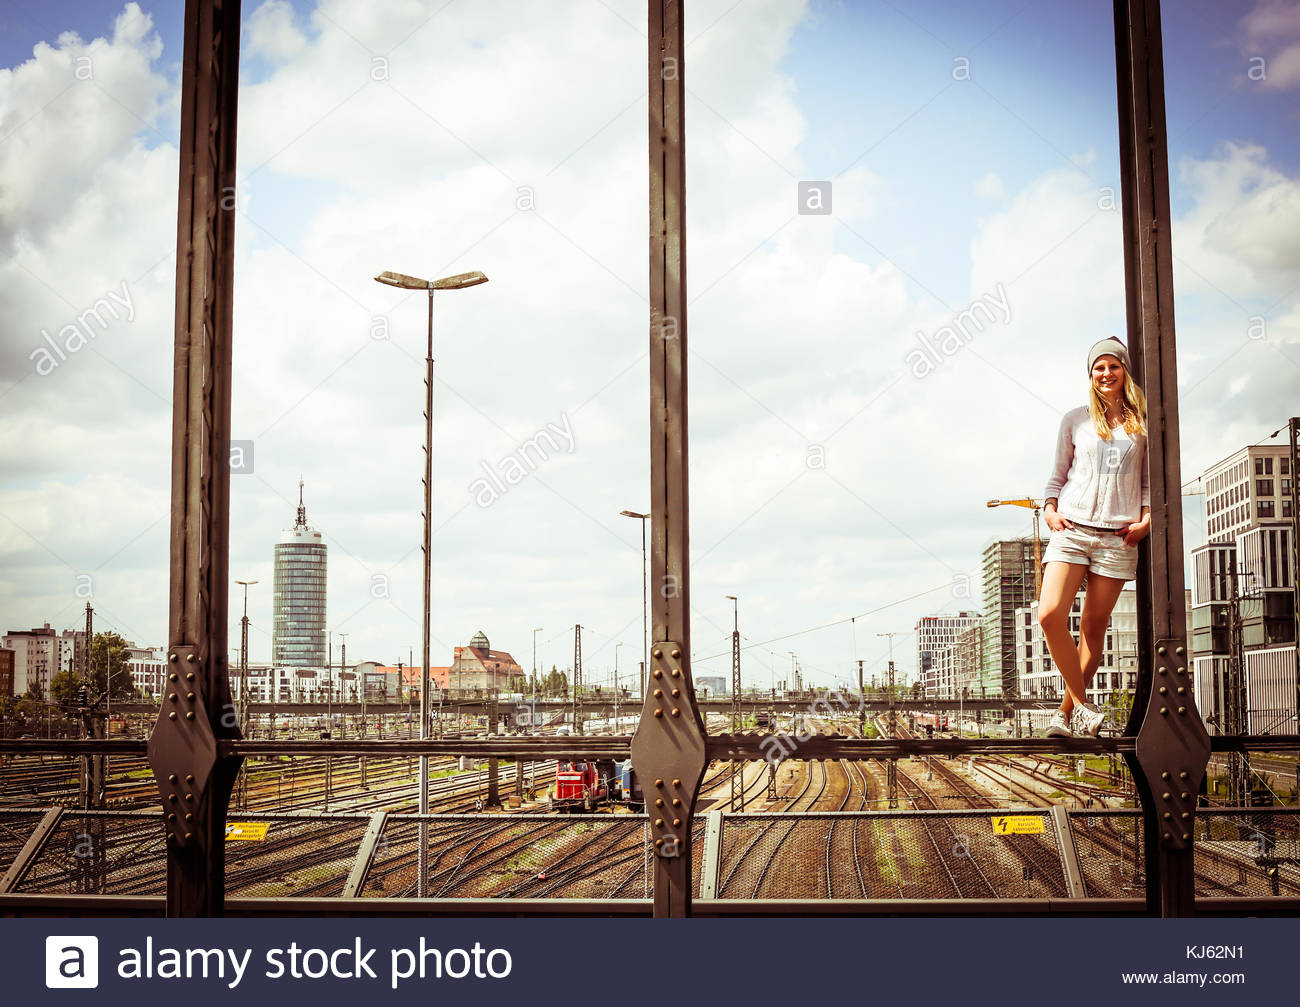 Smiley blonde woman standing over the rim of a bridge overlooking the railways - Stock Image